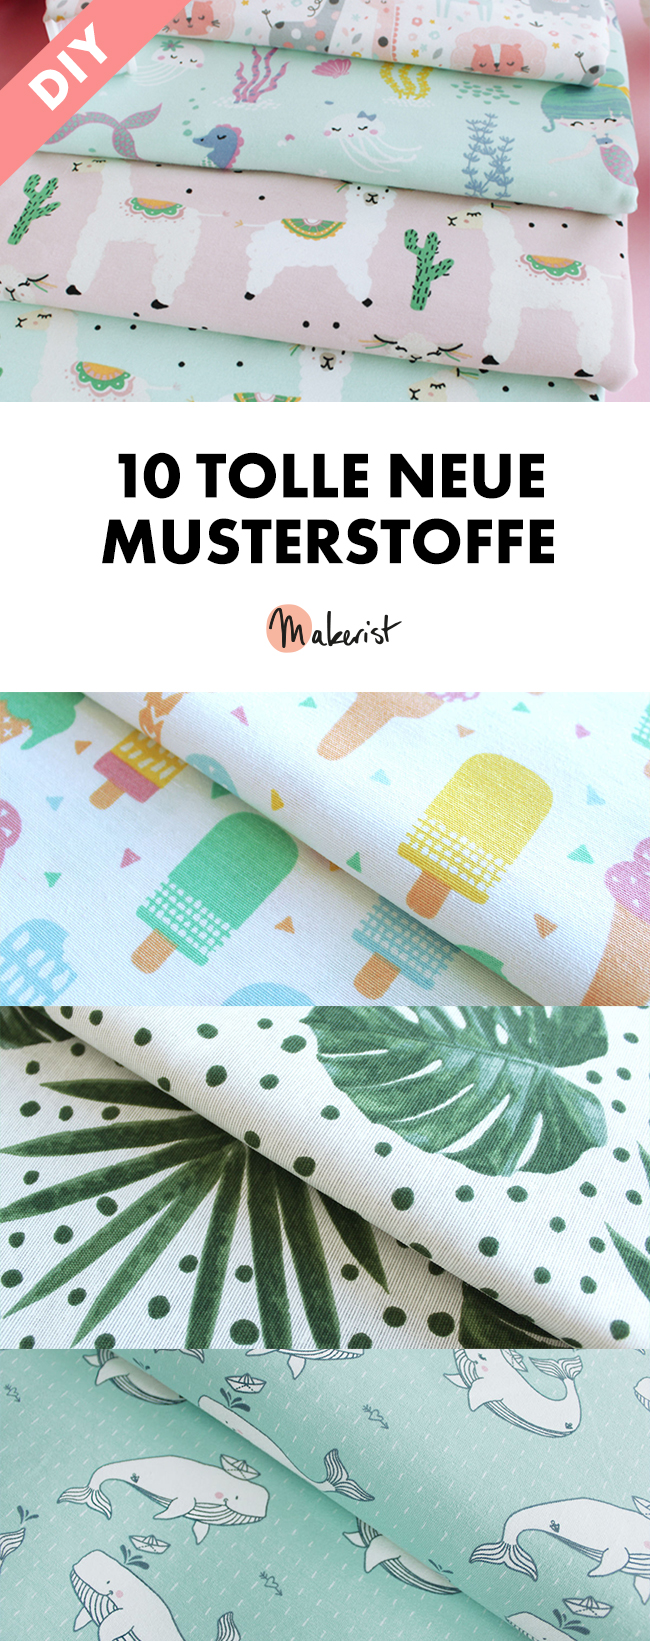 Makerist musterstoffe pin